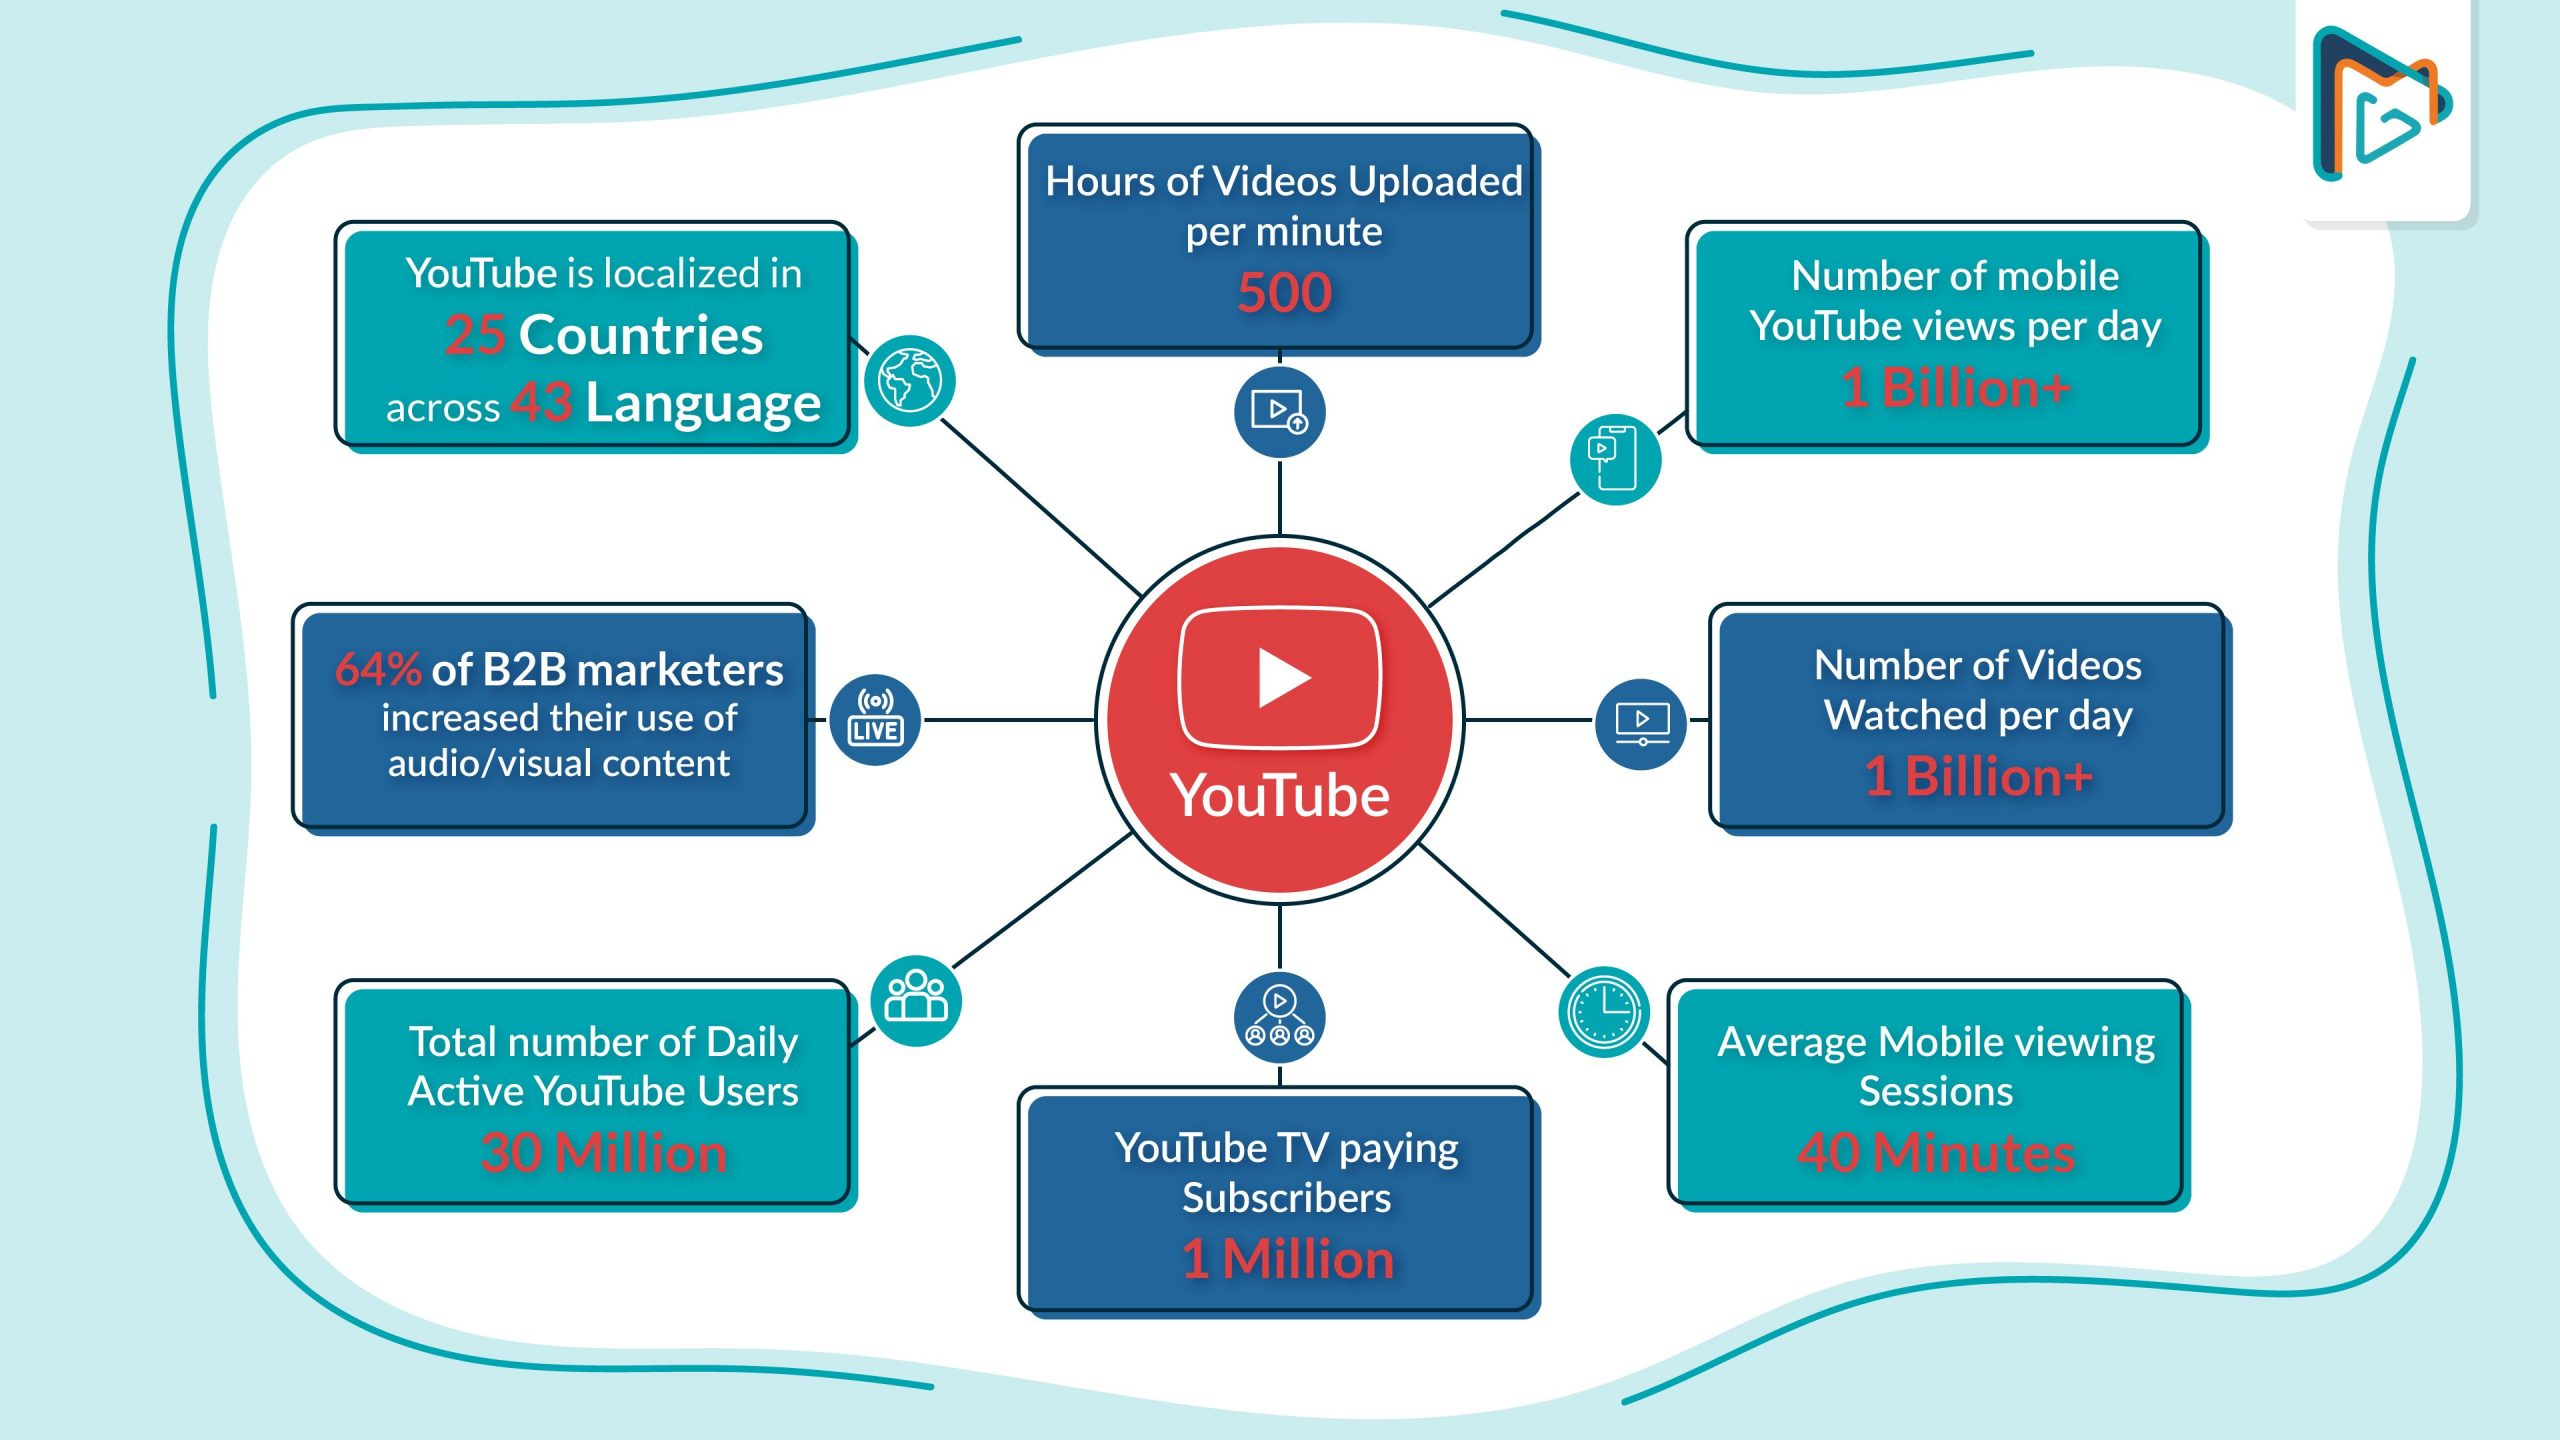 Youtube video marketing facts